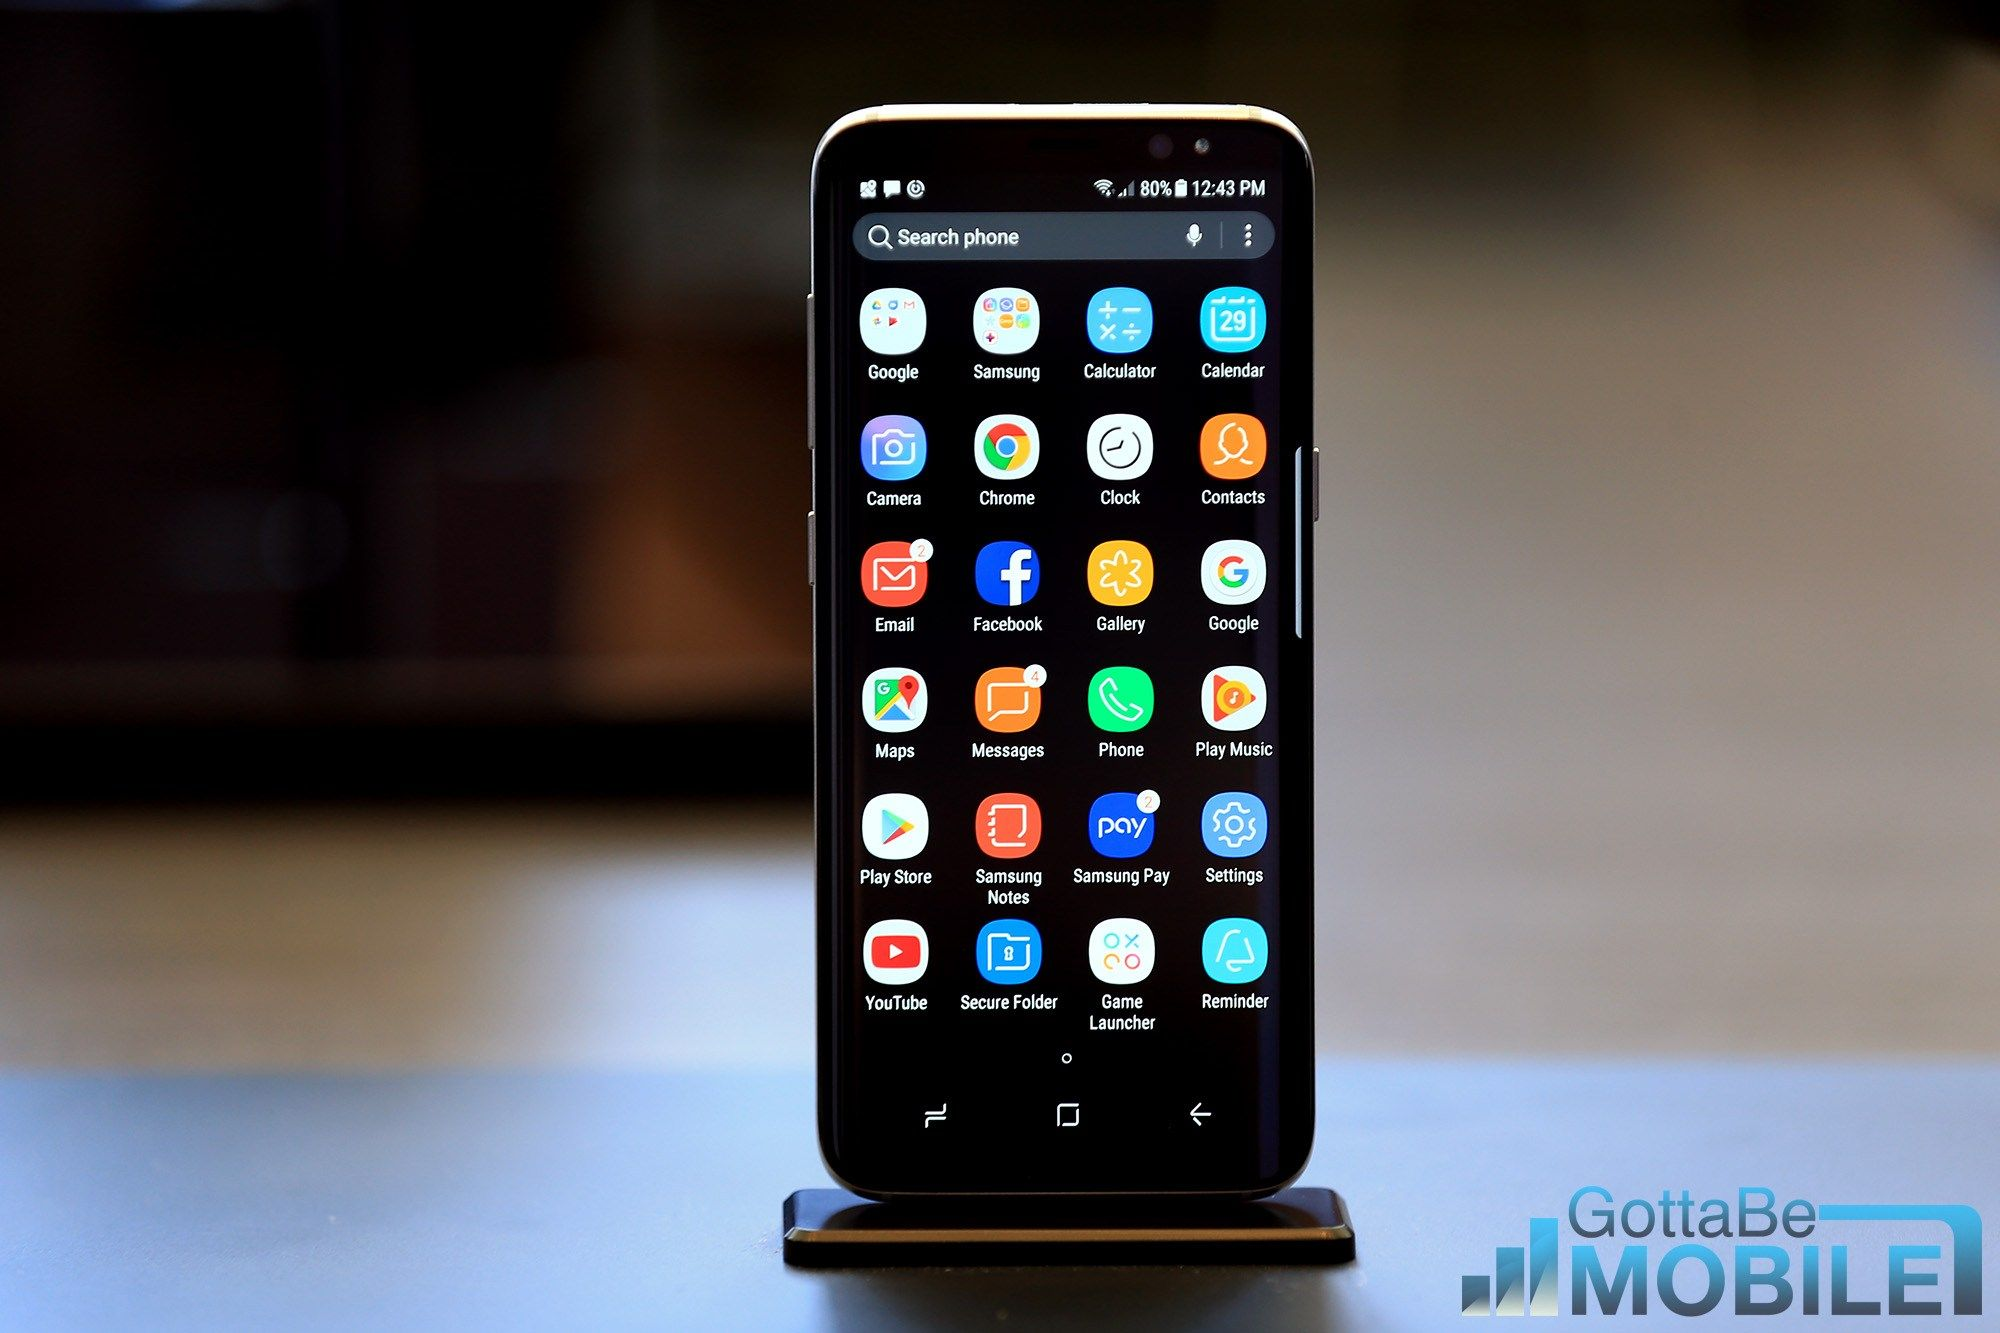 Here's how to change the Galaxy S9 text message app